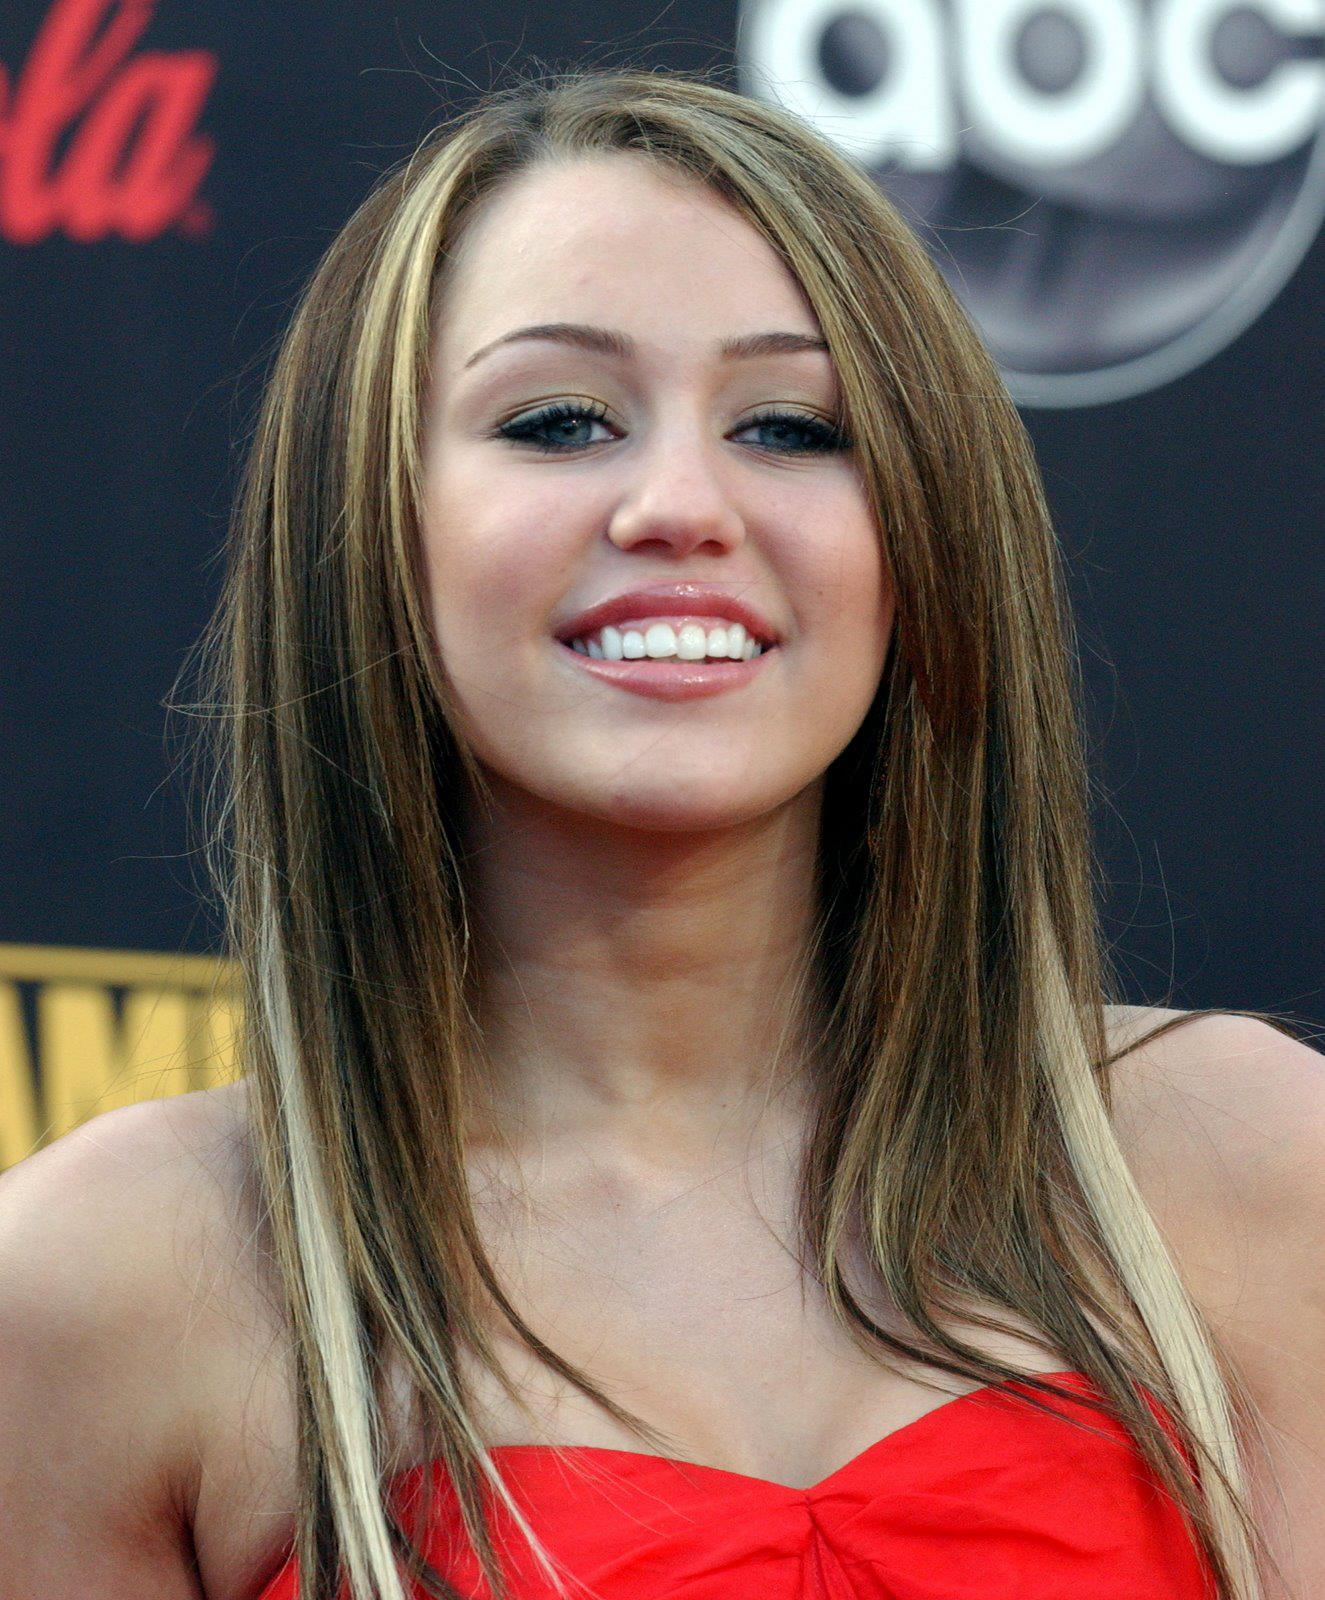 miley cyrus face closeup miley cyrus cleavage shot miley cyrus ...